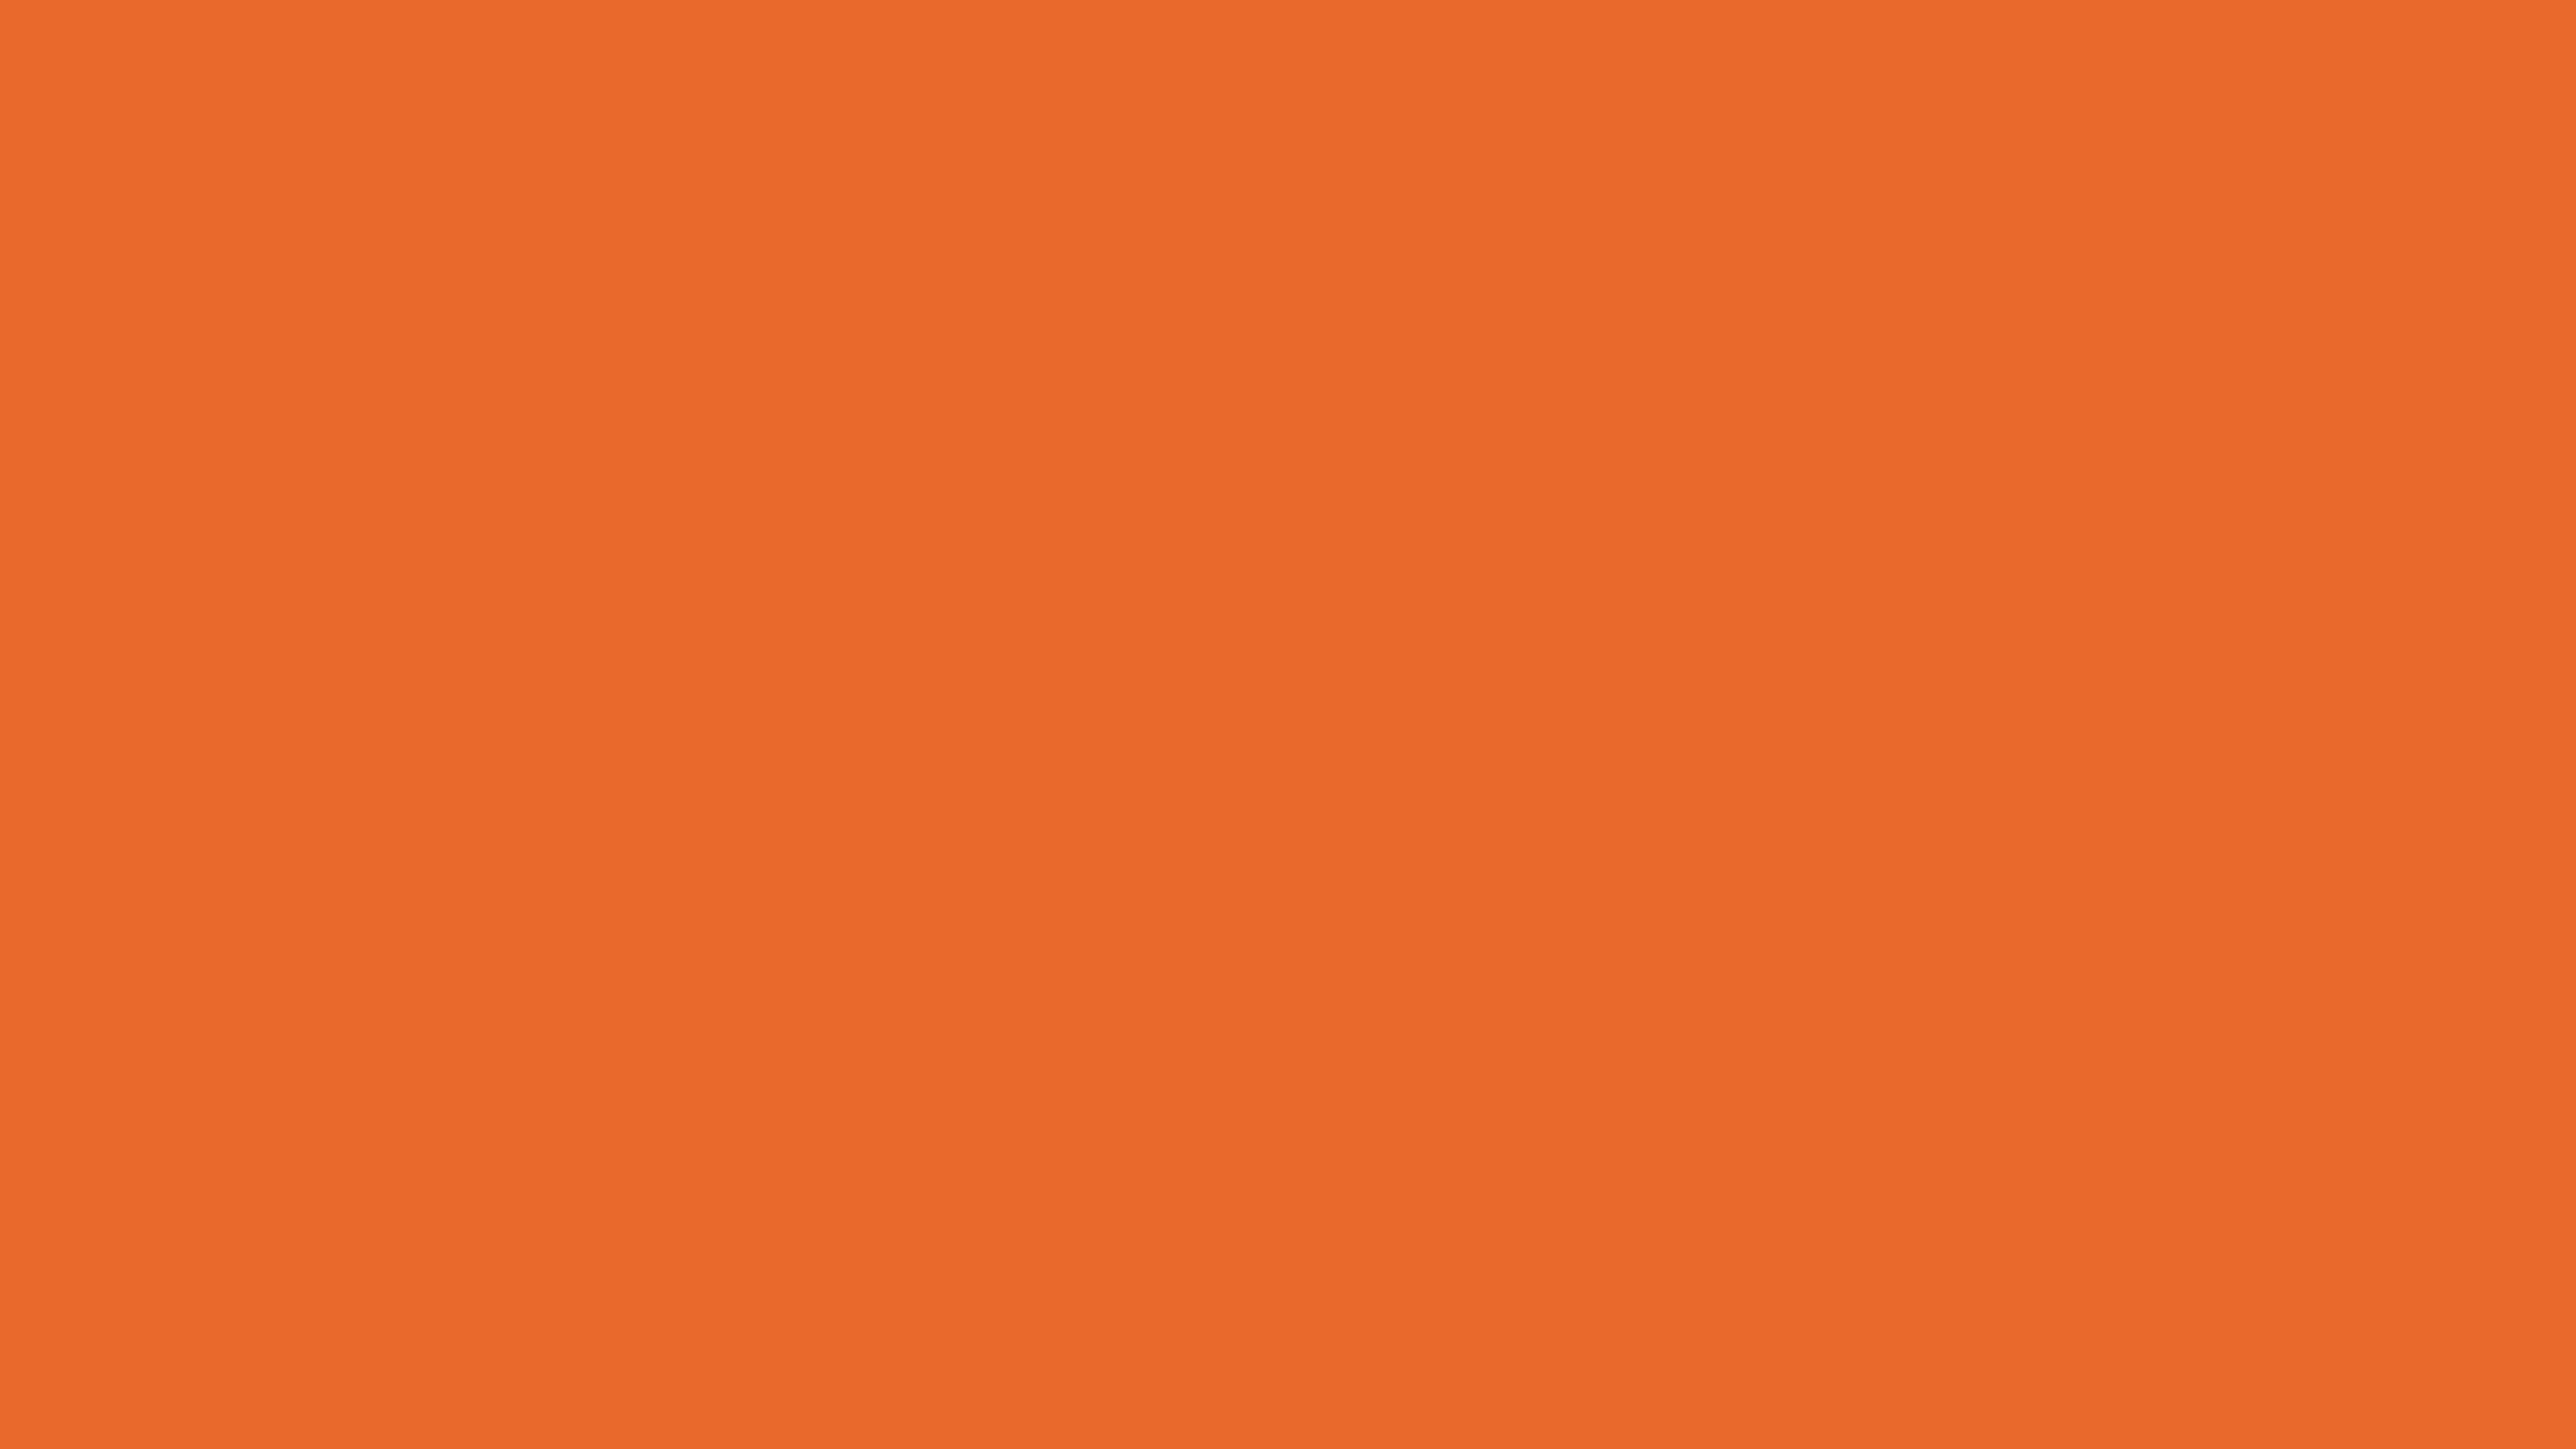 5120x2880 Deep Carrot Orange Solid Color Background